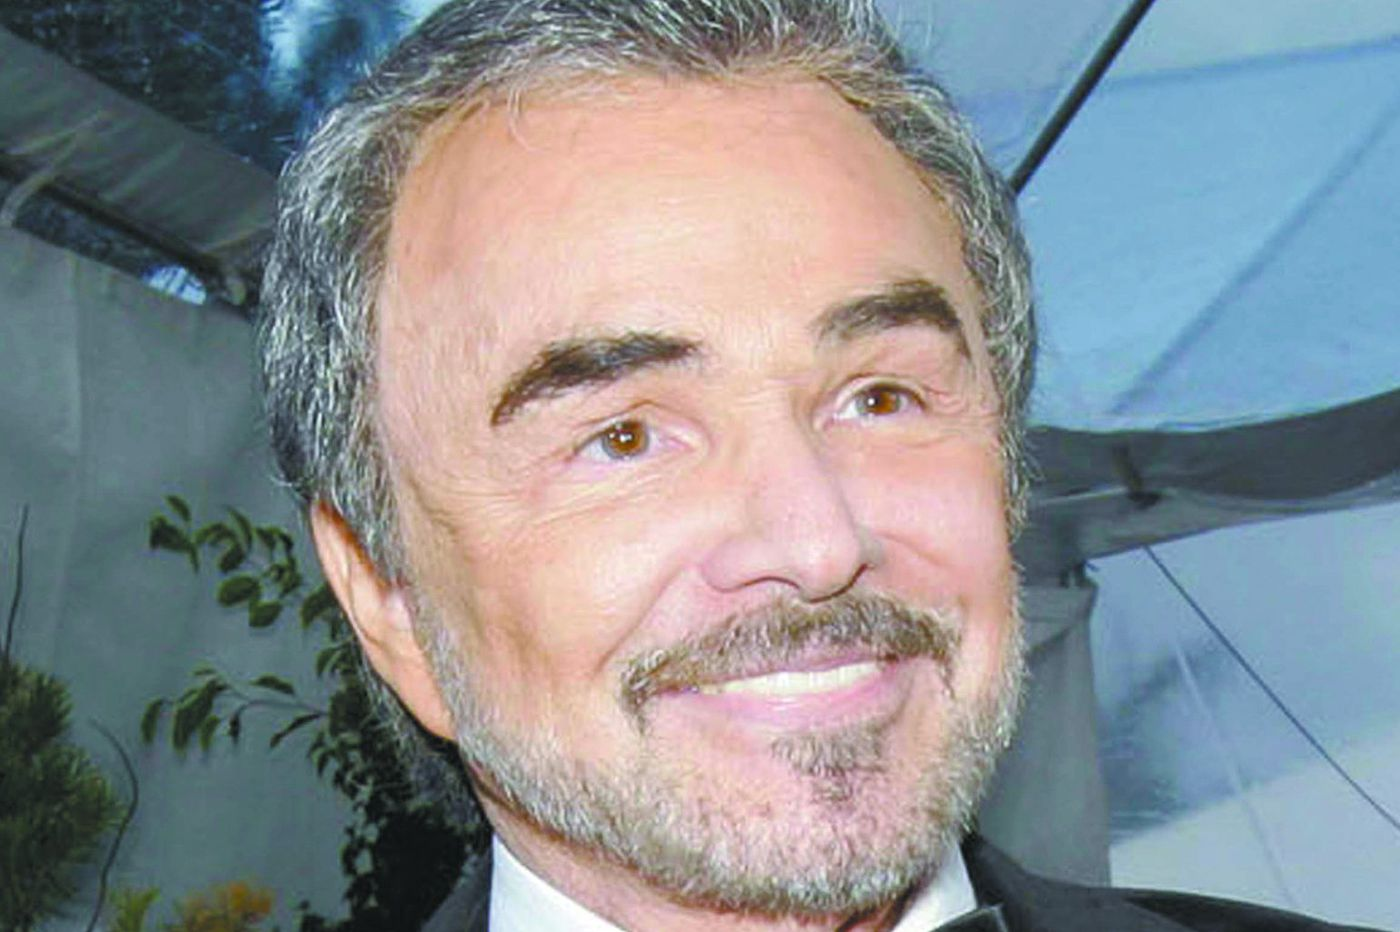 Burt Reynolds is dead at 82